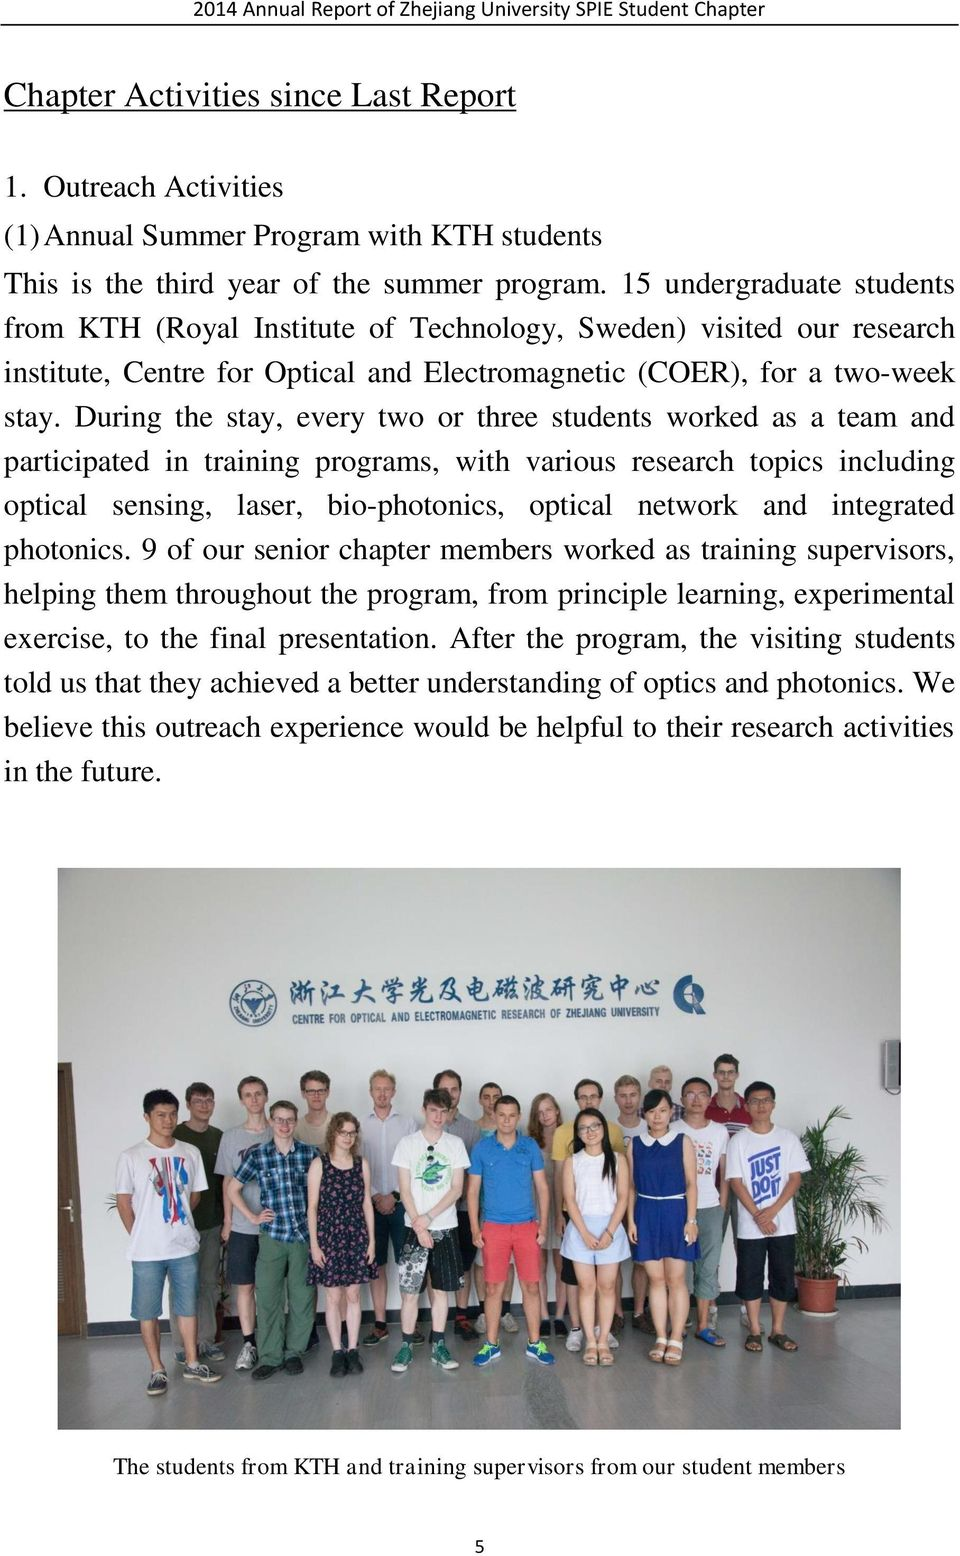 During the stay, every two or three students worked as a team and participated in training programs, with various research topics including optical sensing, laser, bio-photonics, optical network and